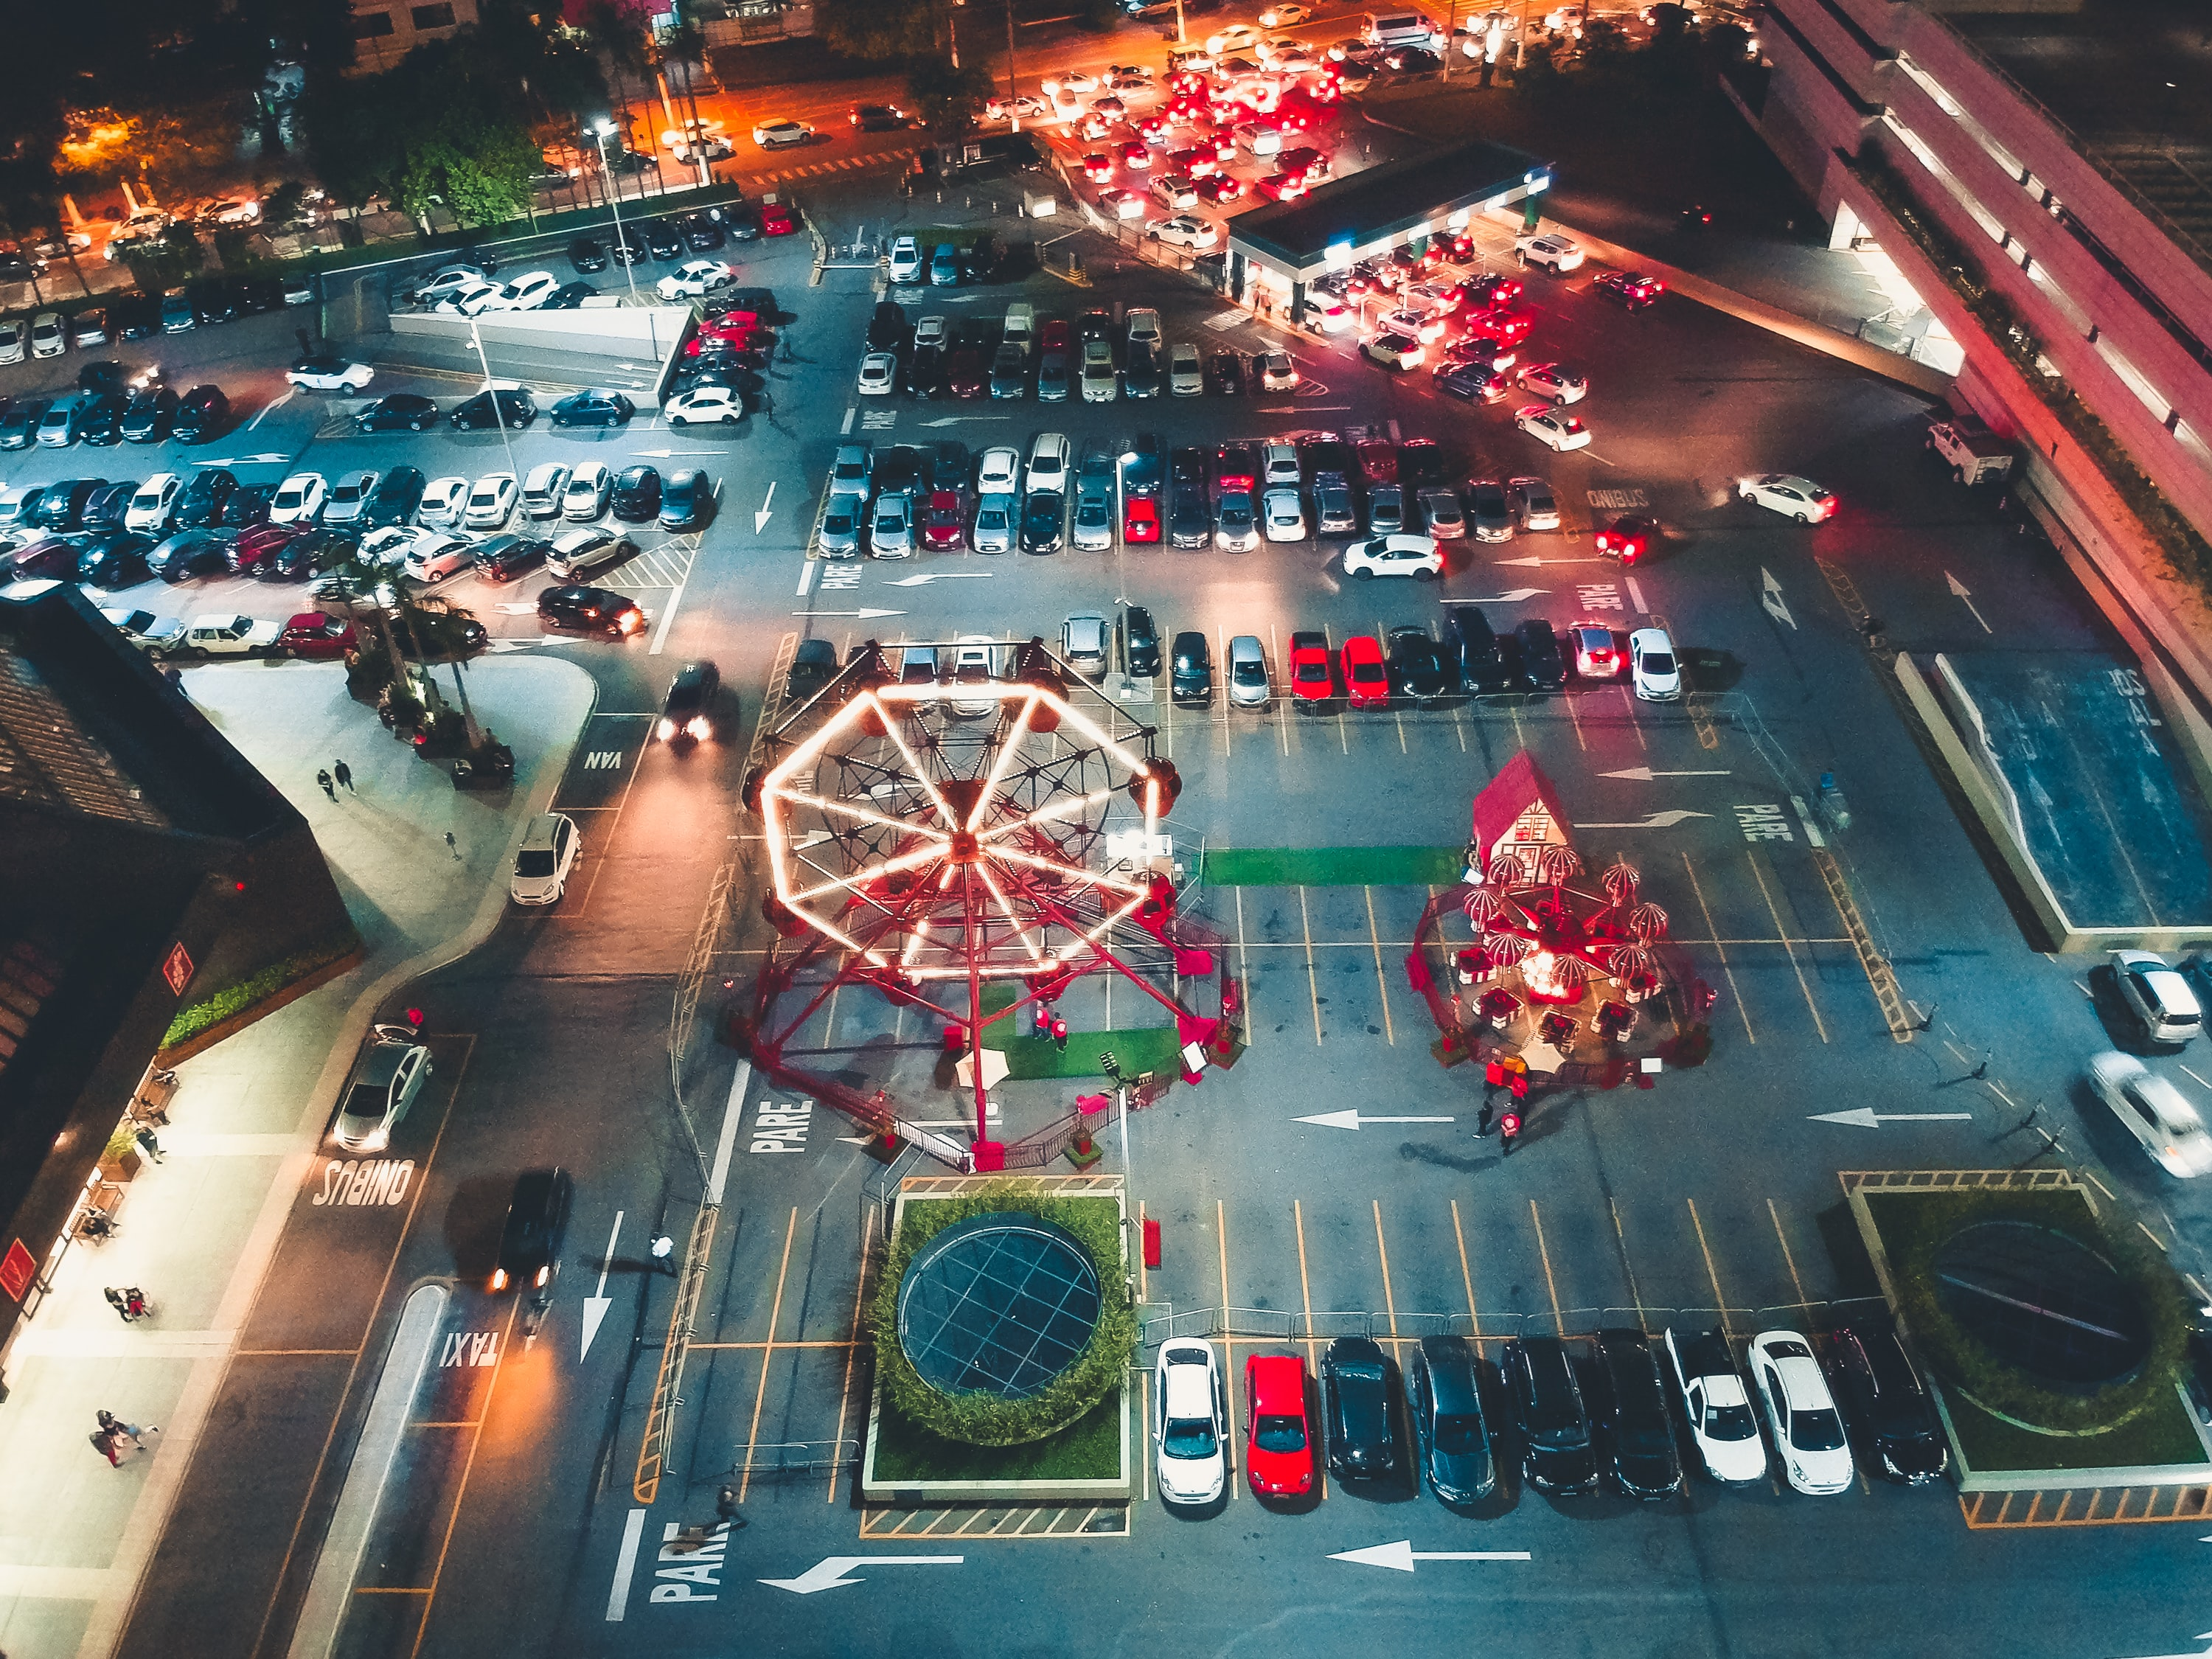 aerial photography of parking lot full of vehicles and carnival rides